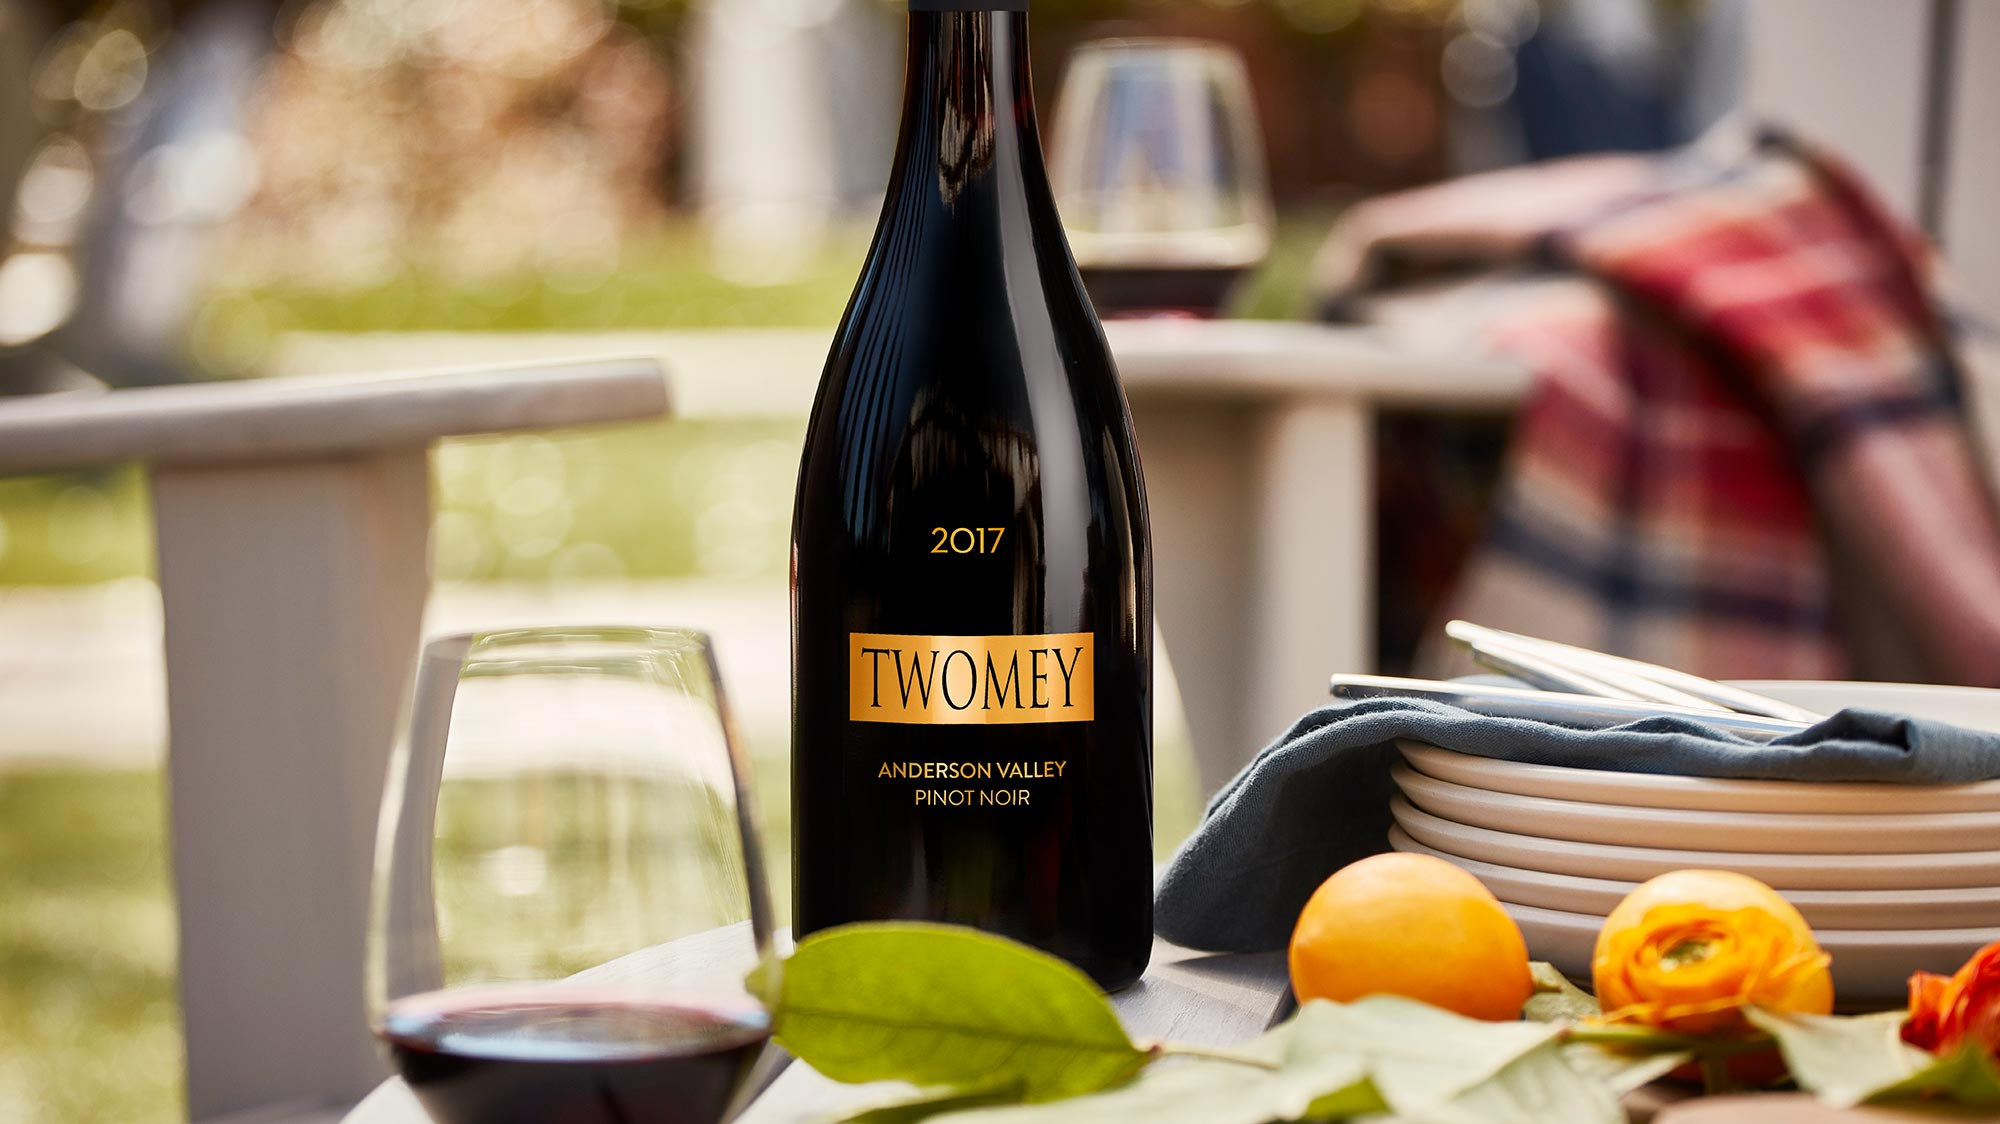 2017 Twomey Anderson Valley Pinot Noir